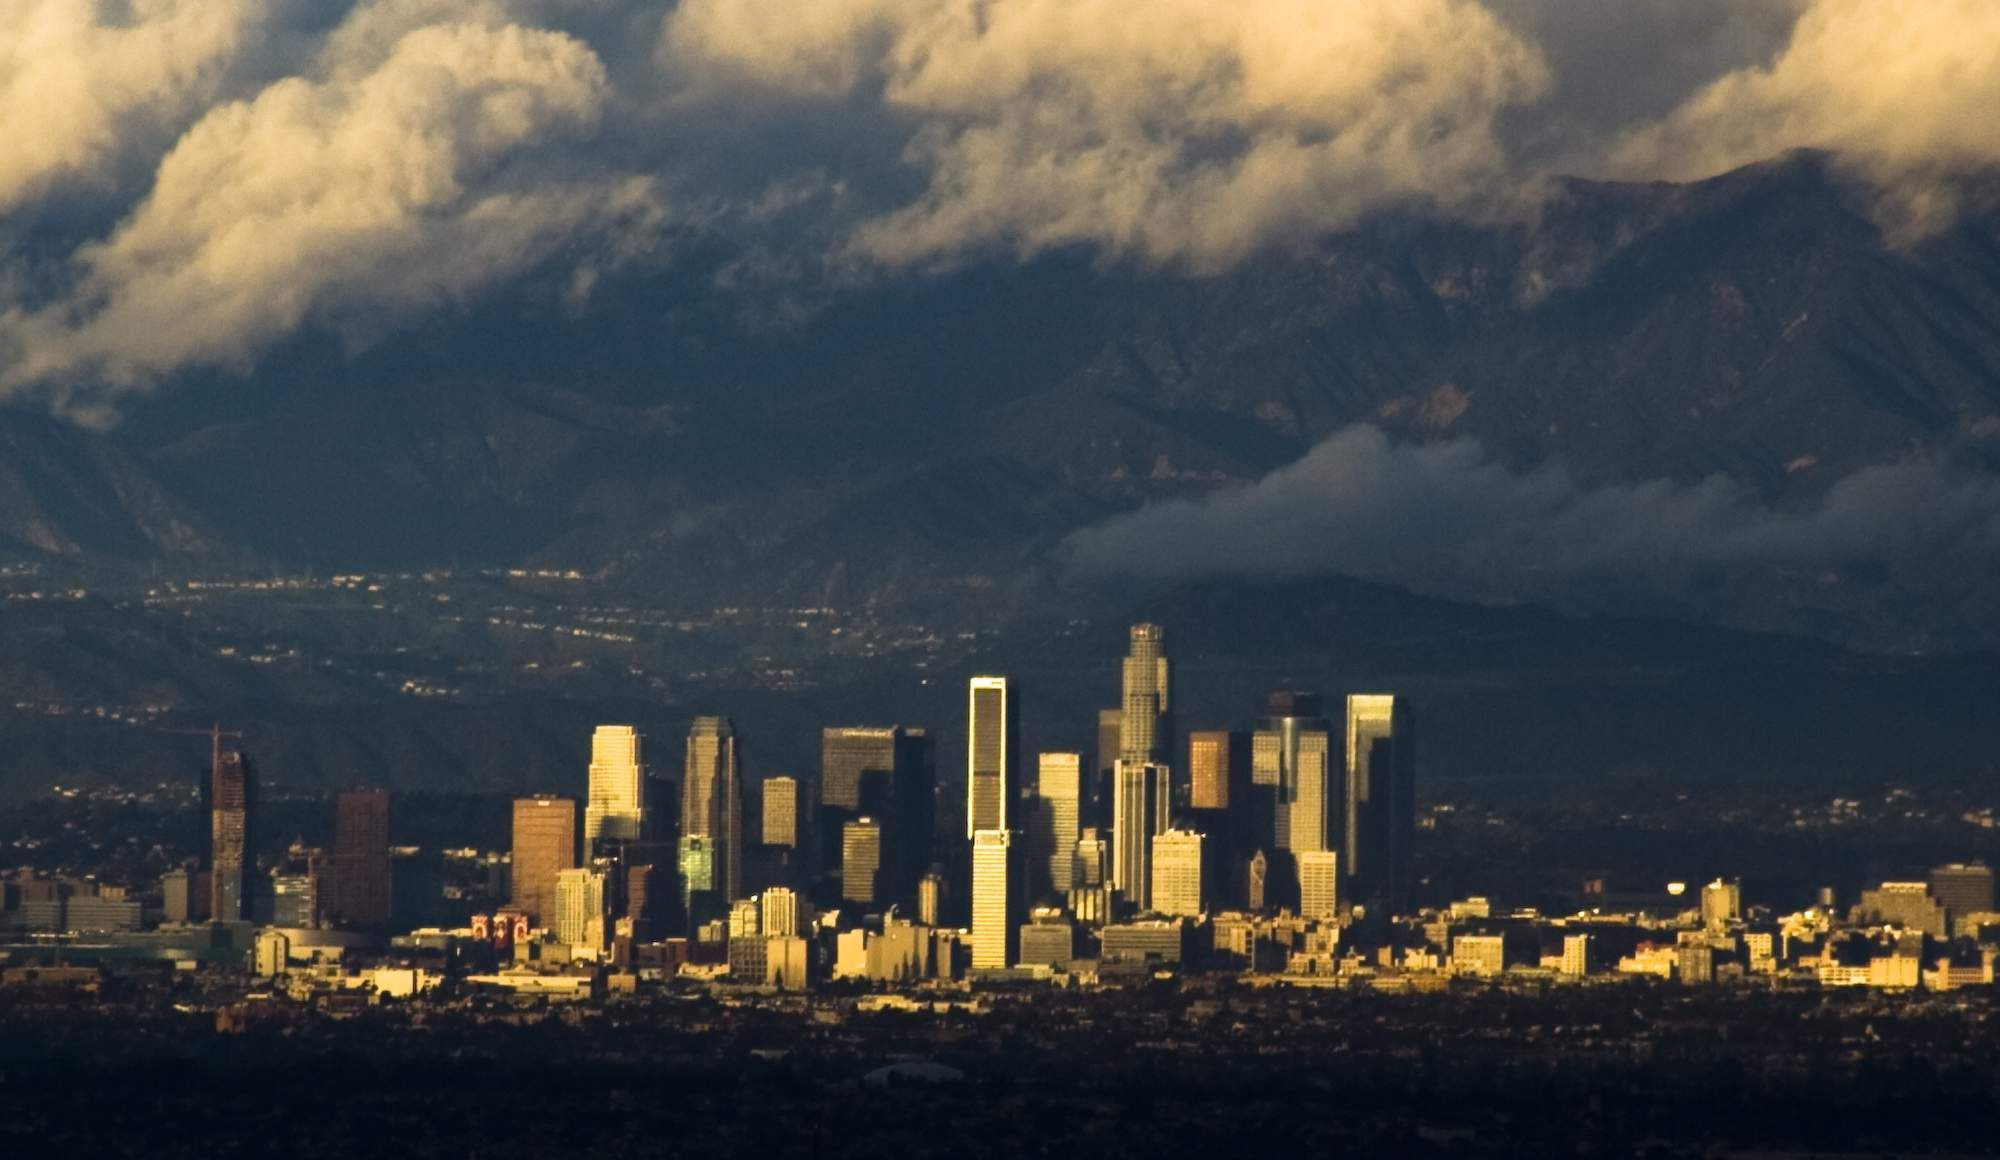 Actually Cool Things To Do In La Places To See La Things To Do Places To Go